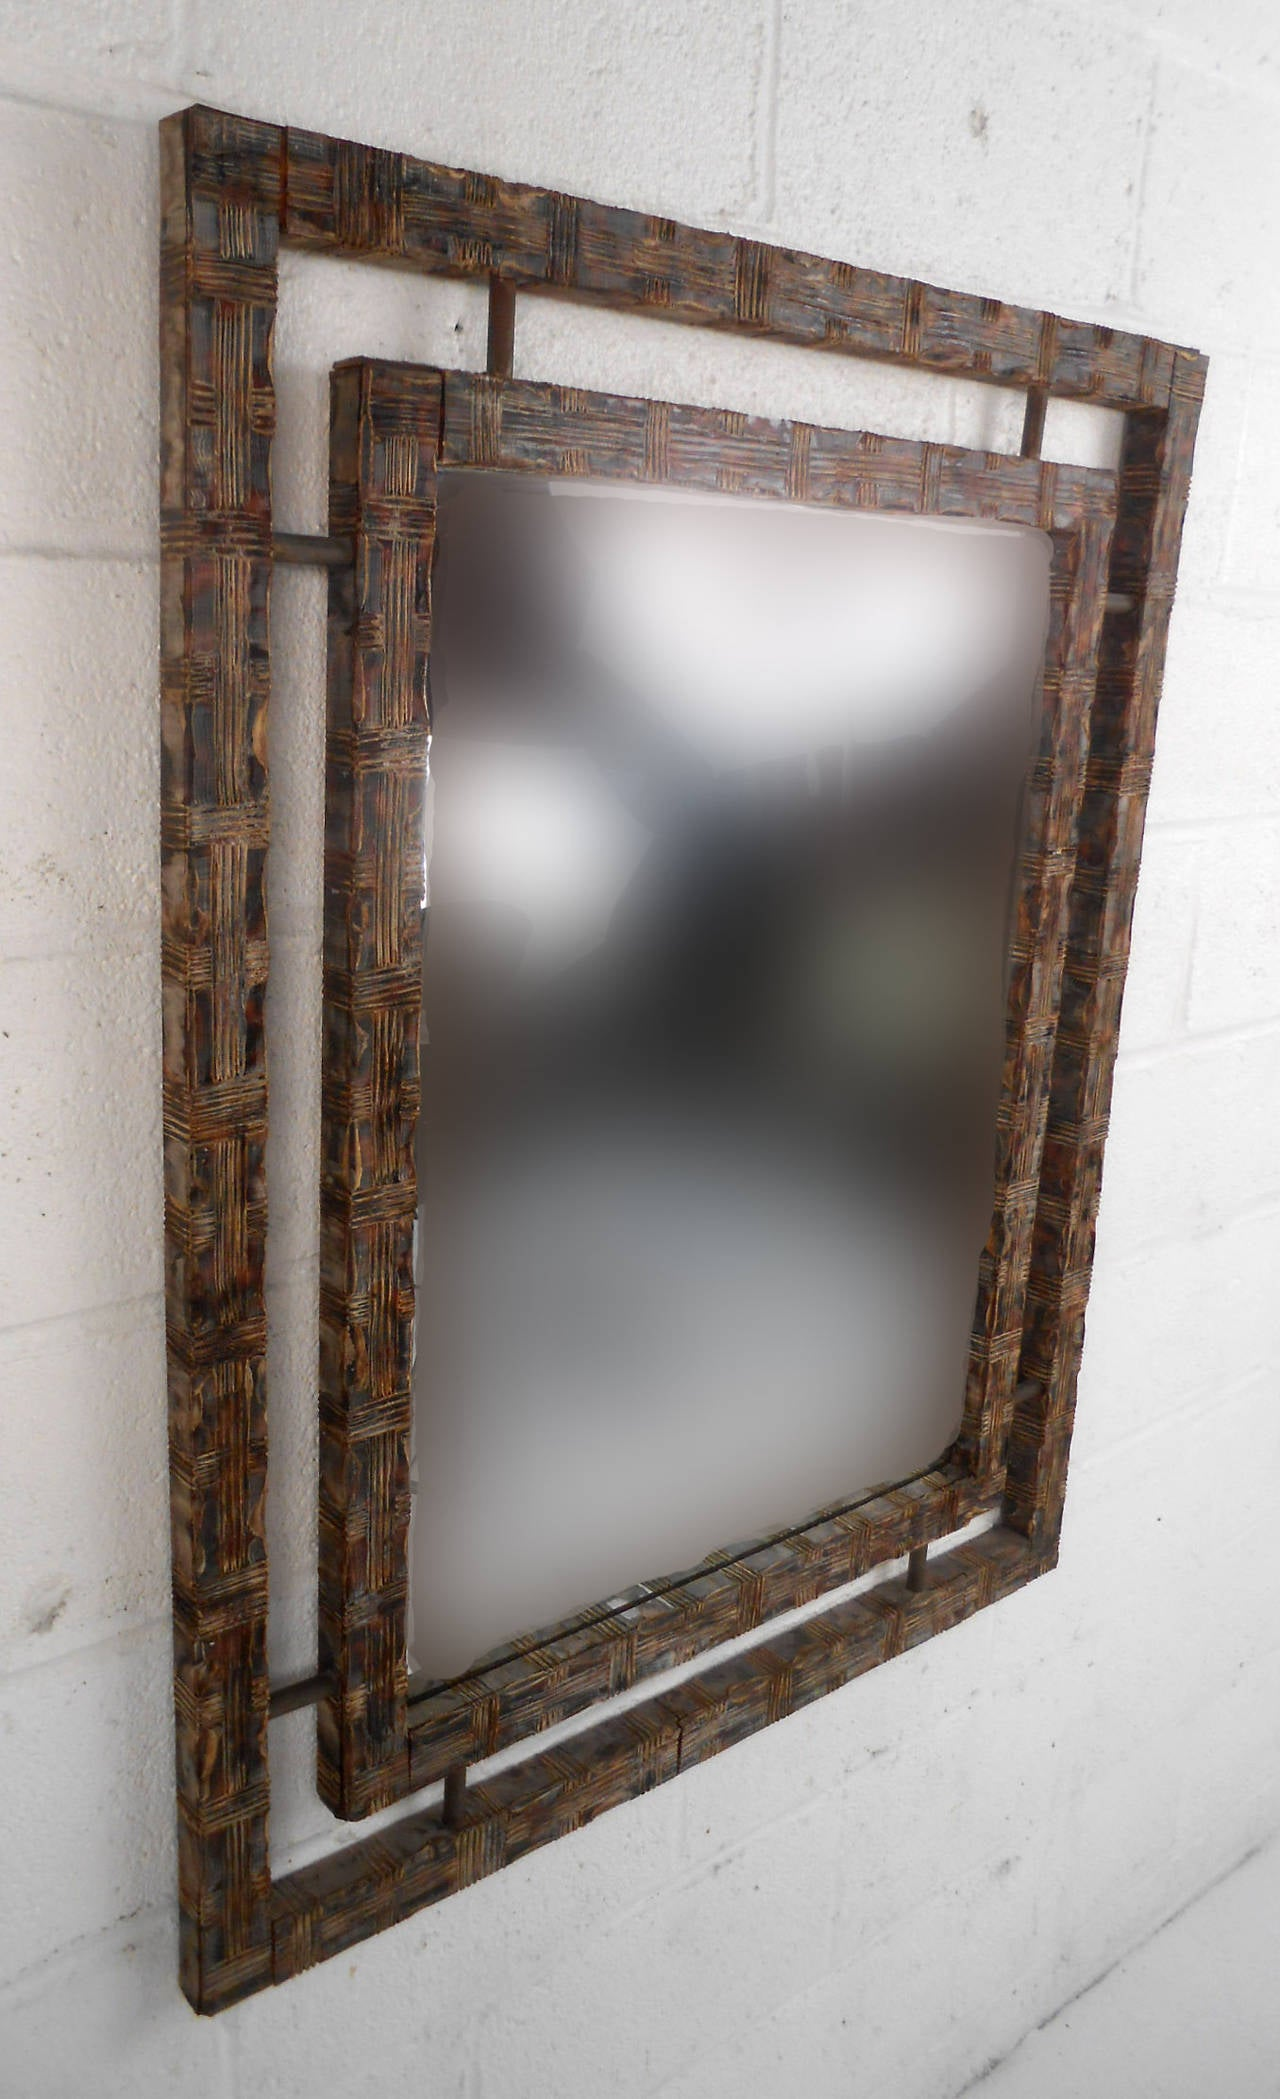 Unusual Mirrors For Wall : Unique wall mirror w textured frame for sale at stdibs